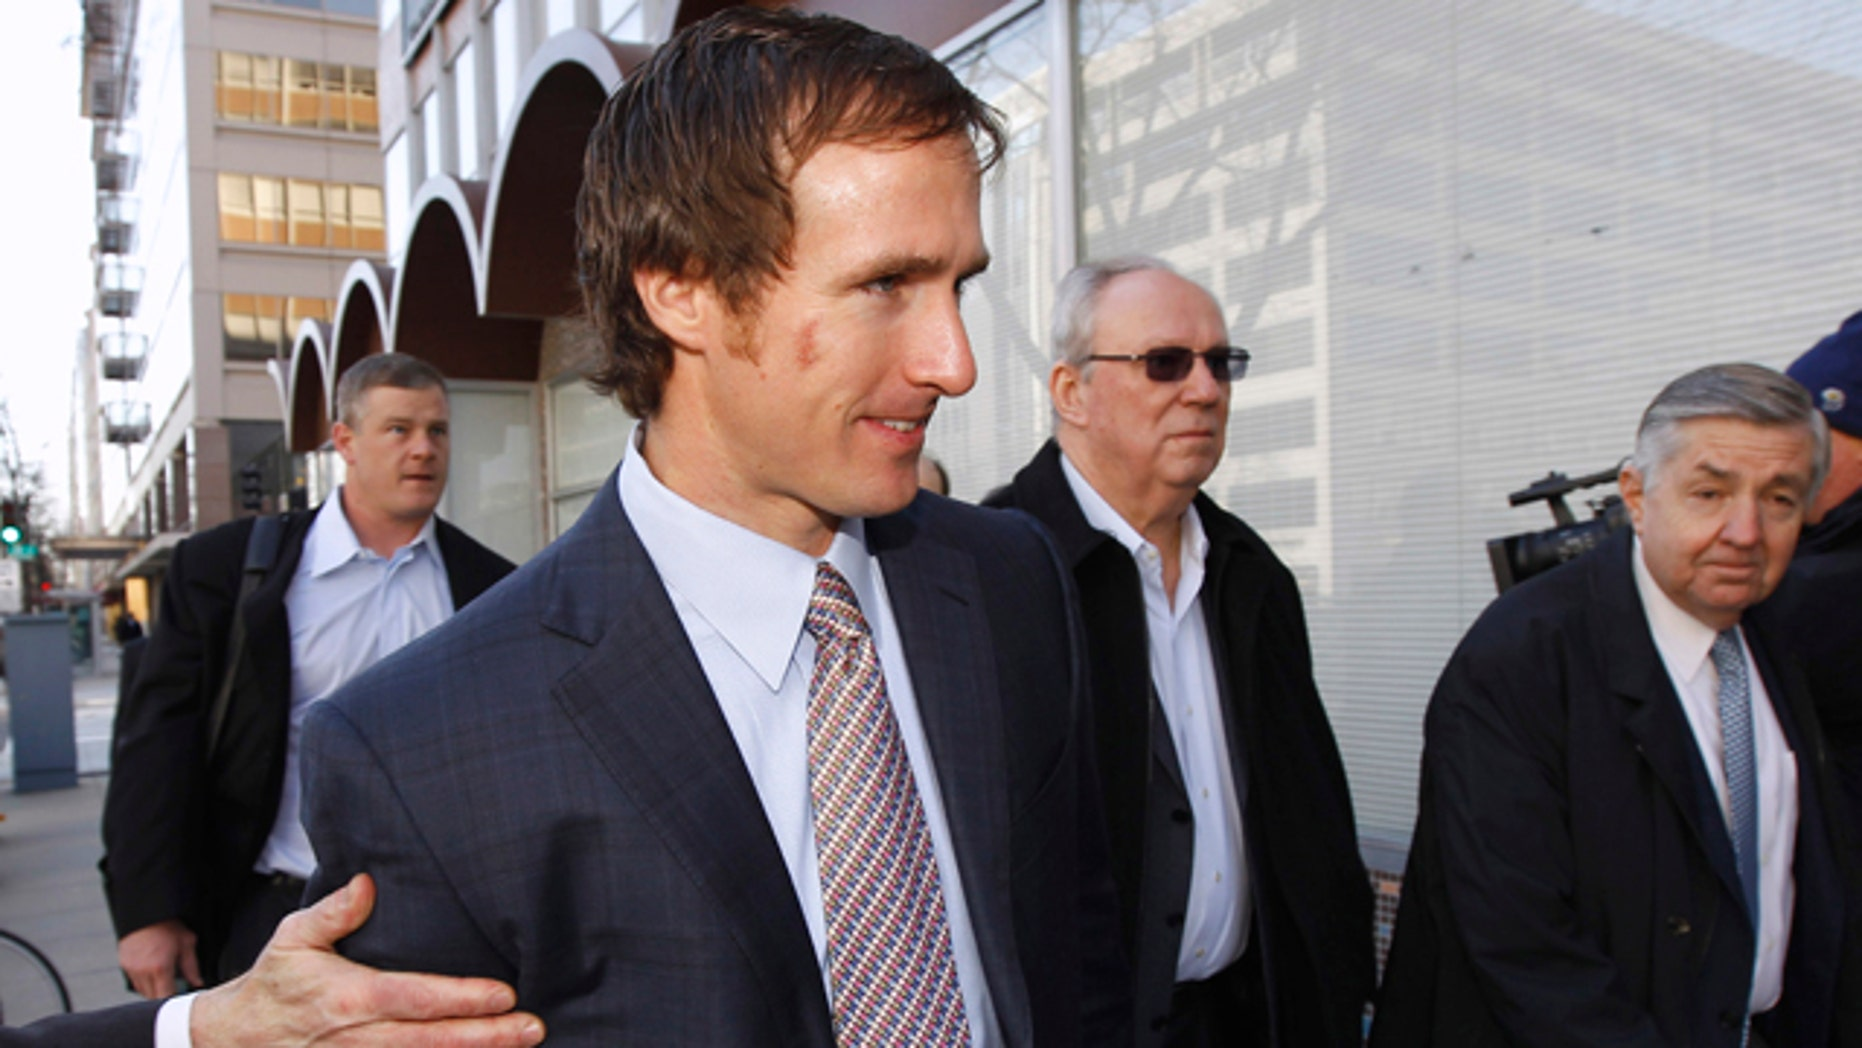 March 2: New Orleans Saints quarterback Drew Brees arrives for football labor negotiations with the NFL involving a federal mediator in Washington.